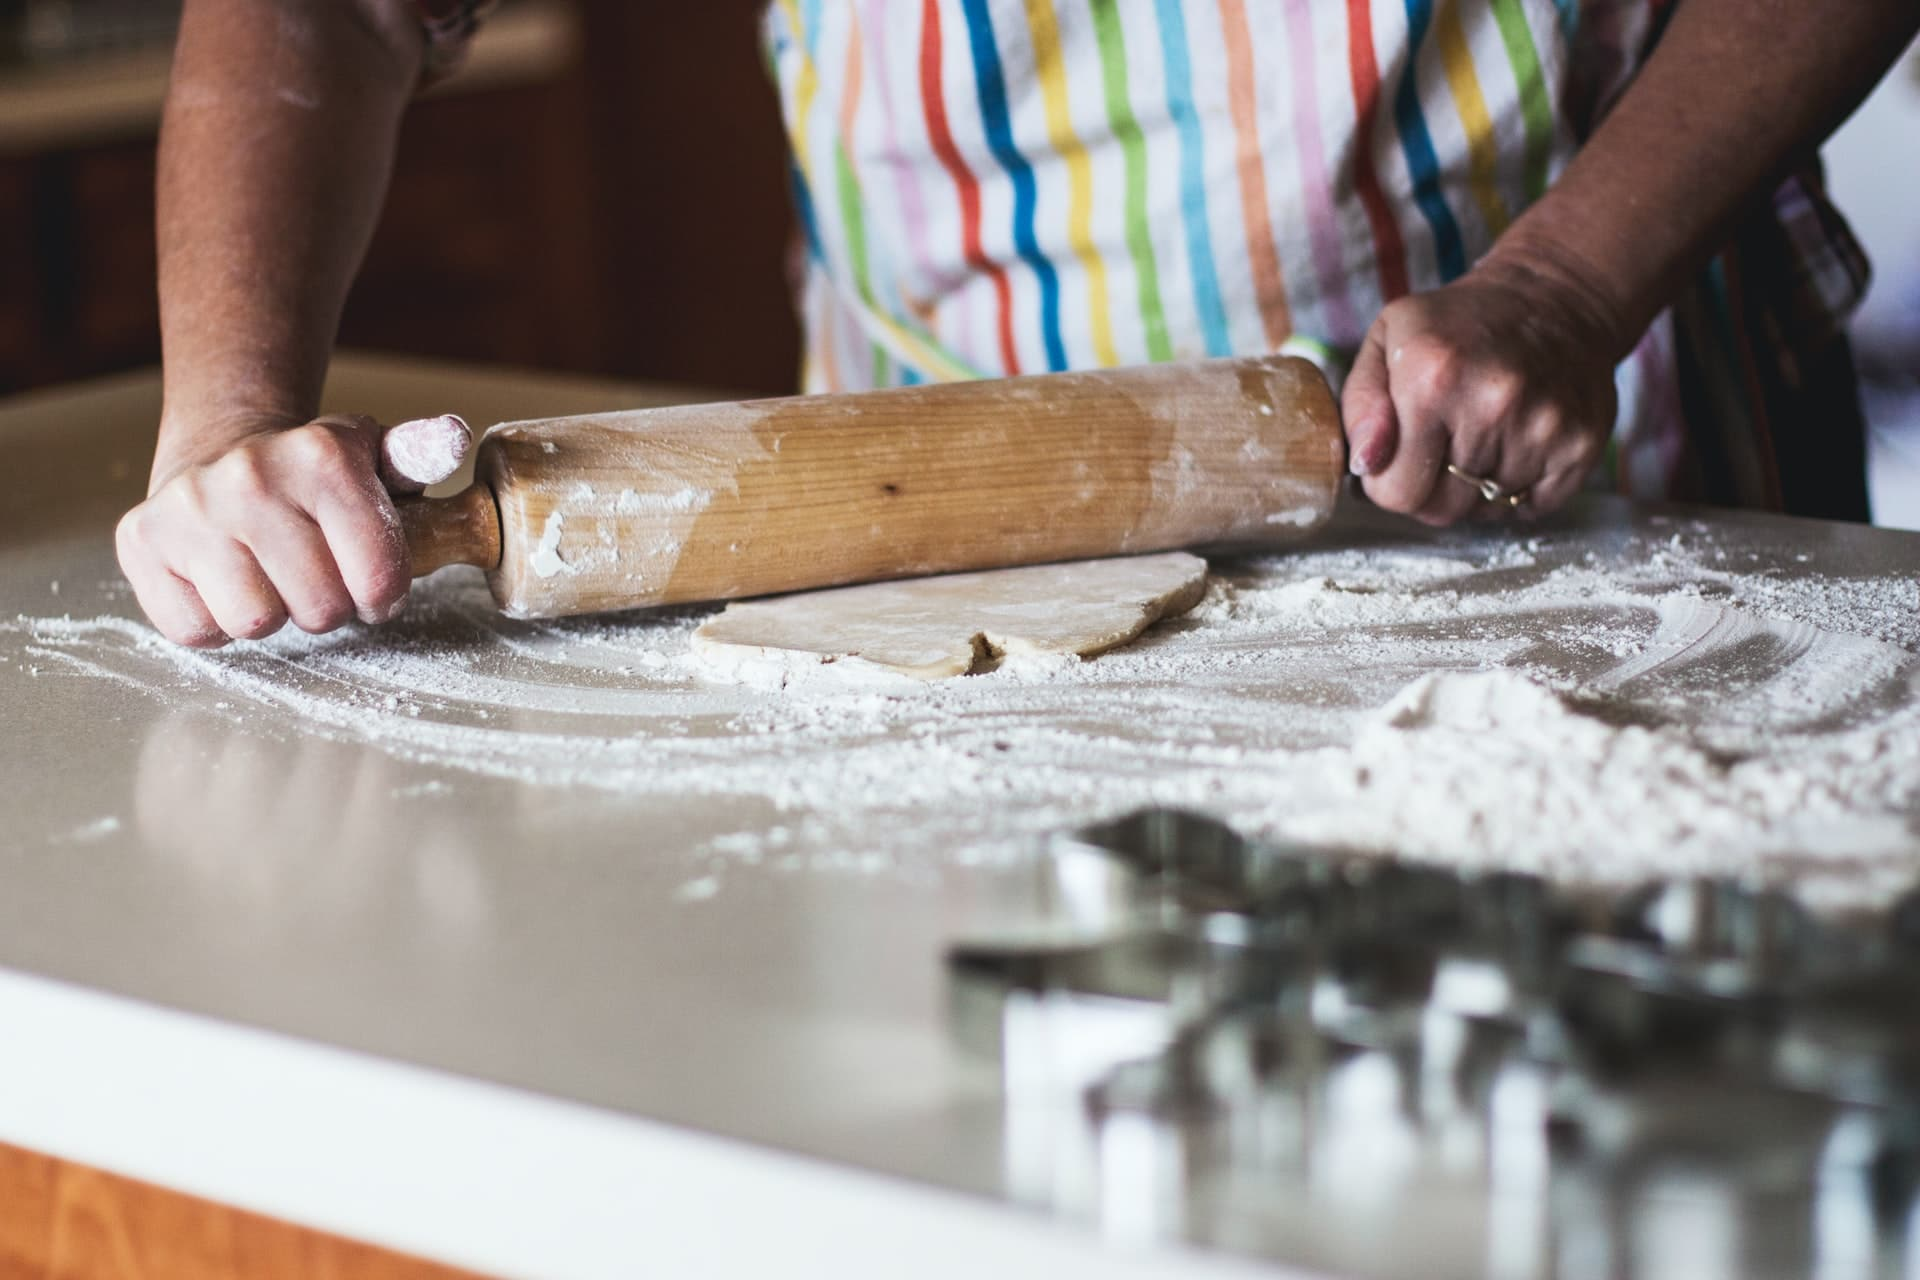 Baking on a marble kitchen countertops